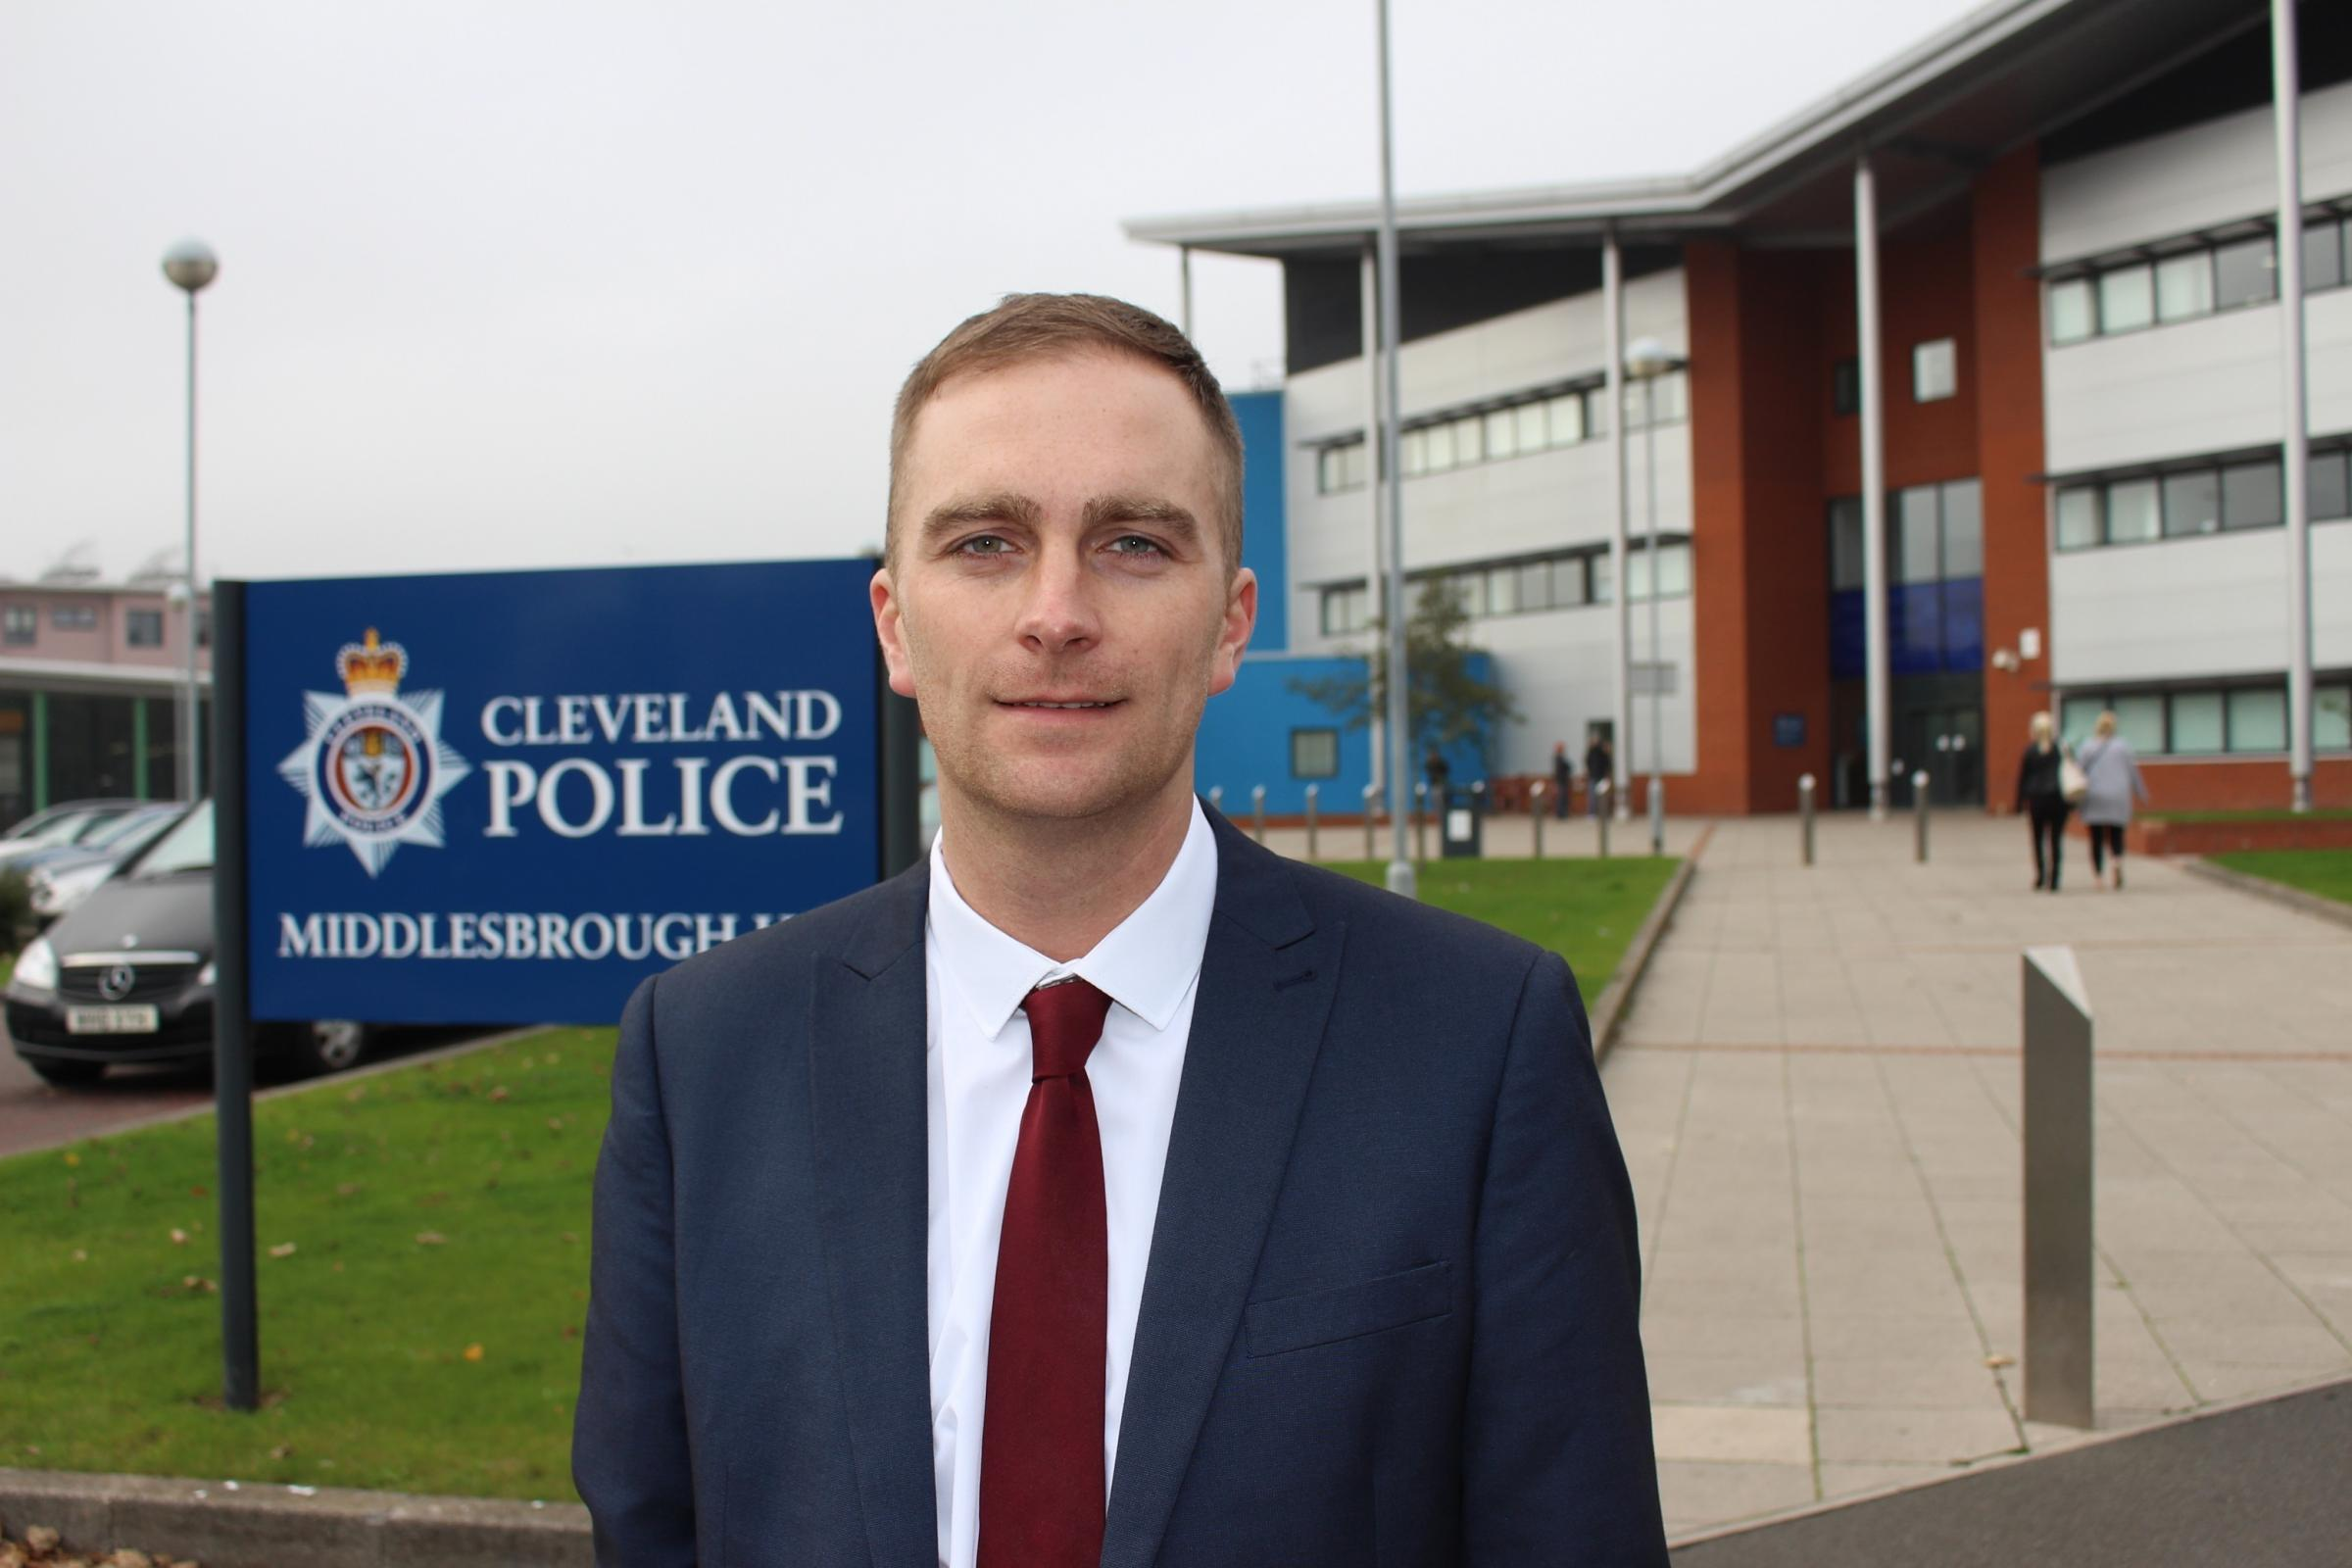 Matthew Vickers, who has been selected as the Conservative candidate for Cleveland's Police and Crime Commissioner